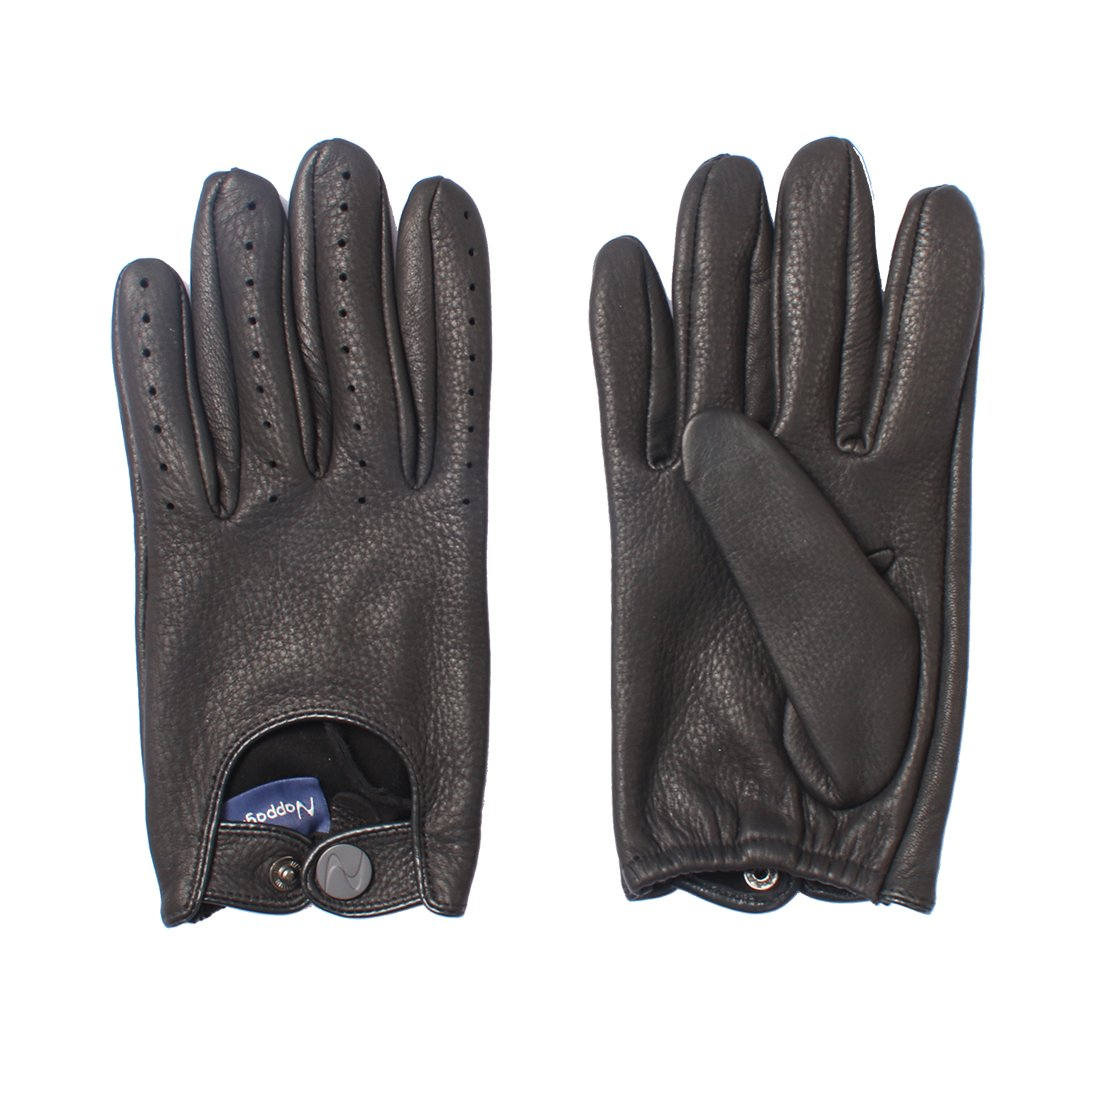 Nappaglo Men's Deerskin Leather Driving Gloves Touchscreen Full Finger Motorcycle Cycling Riding Unlined Gloves (M (Palm Girth:8''-8.5''), Black (Non-Touchscreen))